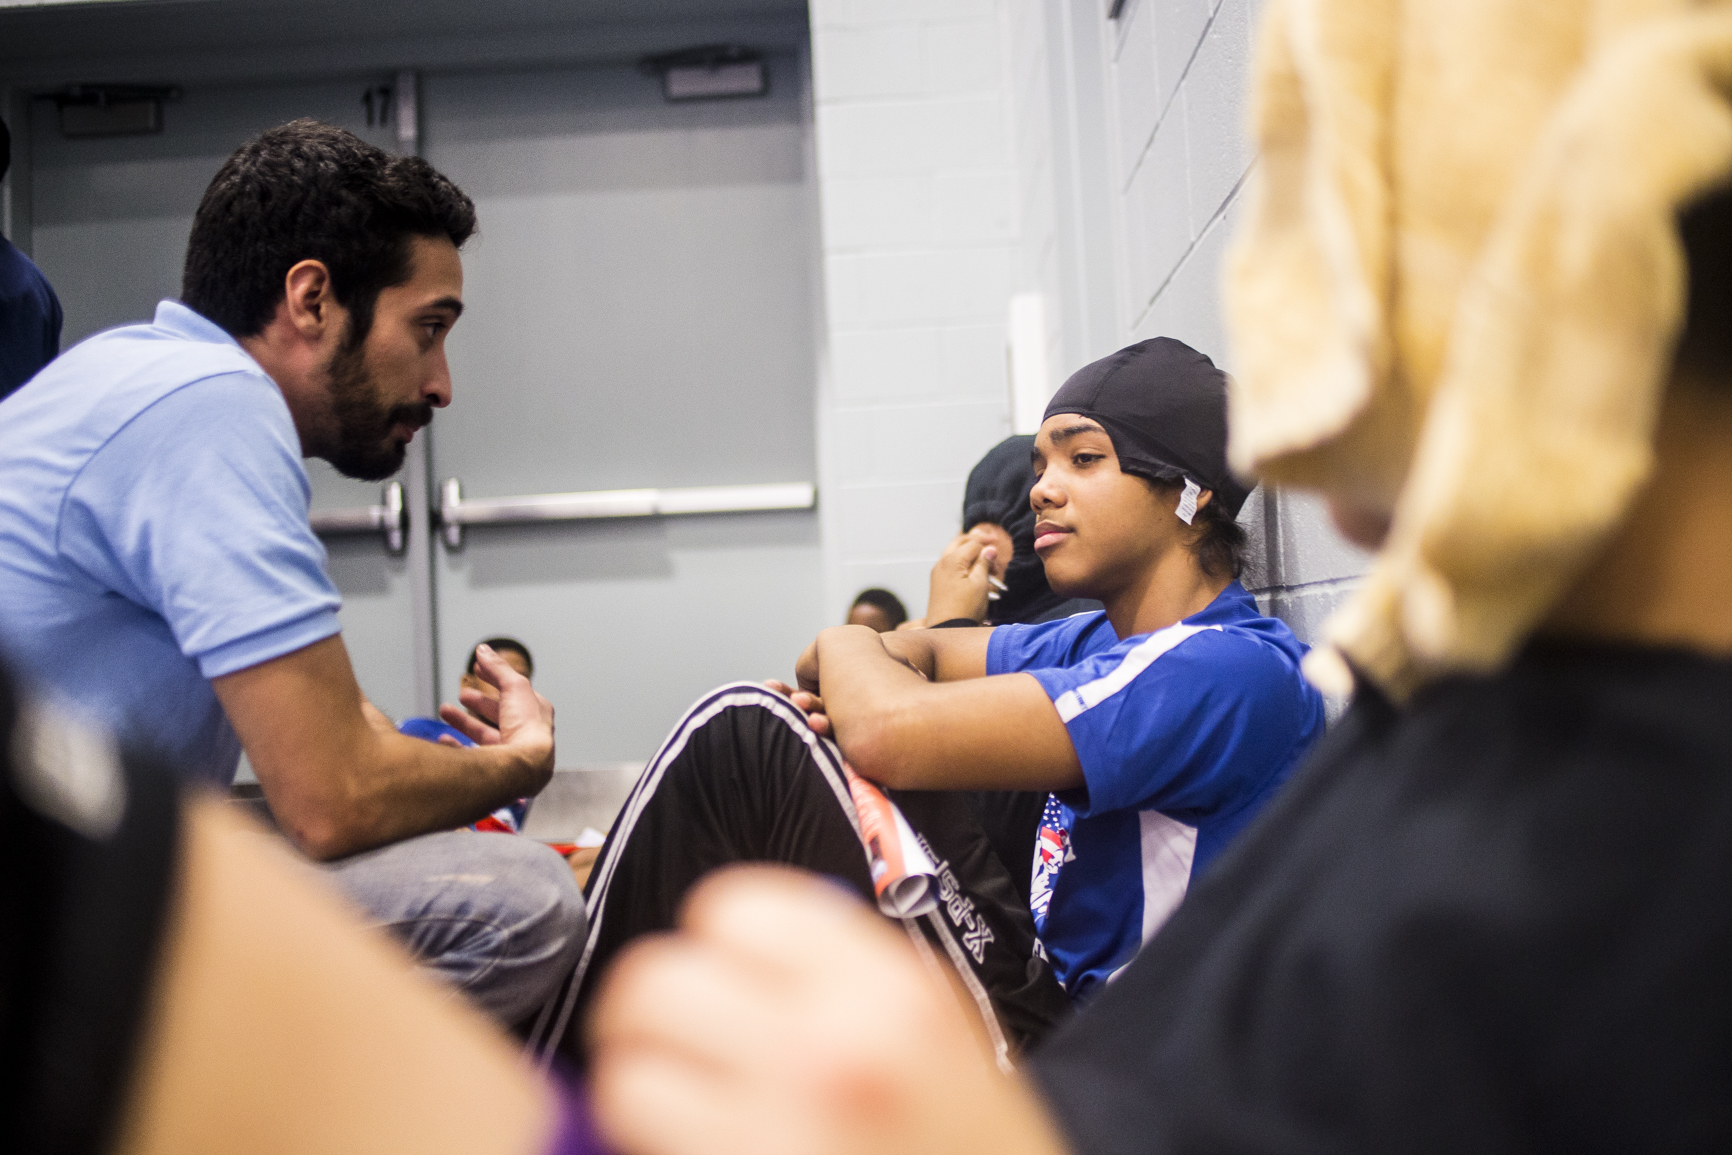 Mentorship - Our coaches are trained to work with marginalized students and build their character and self-esteem, and to build healthy relationships with adults and peers.